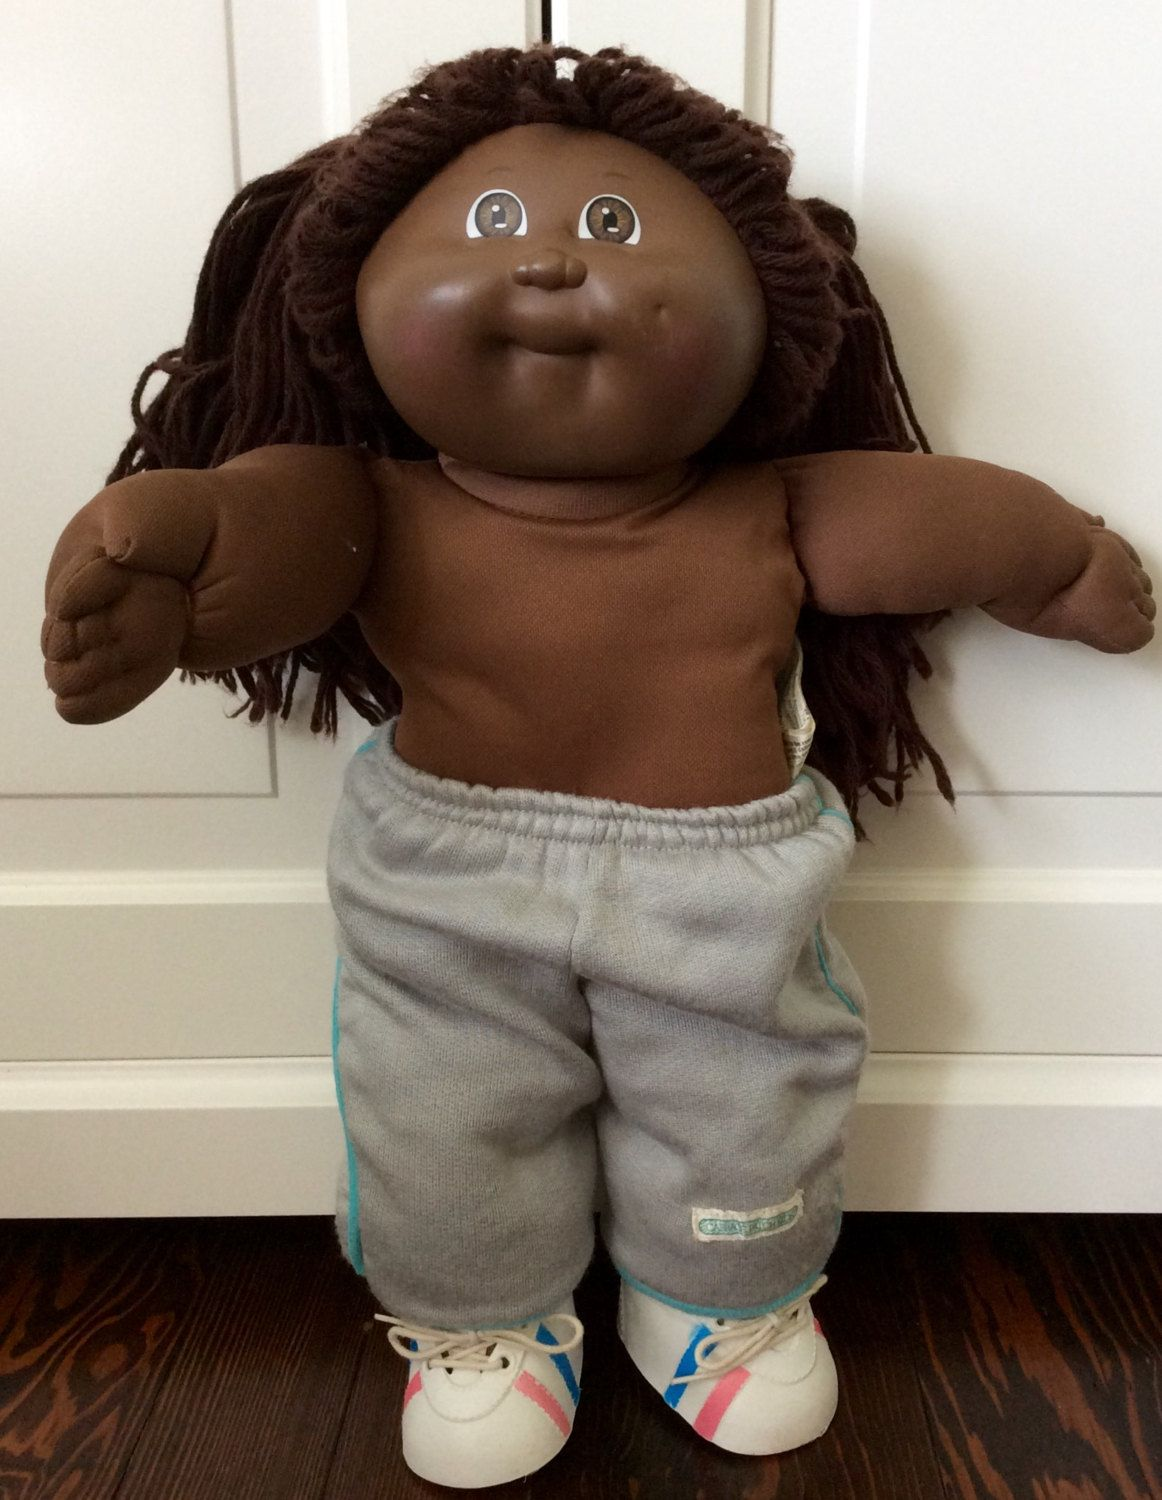 1984 Cabbage Patch Kids African American Doll By Xavier Etsy Cabbage Patch Kids Cabbage Patch Kids Dolls African American Dolls